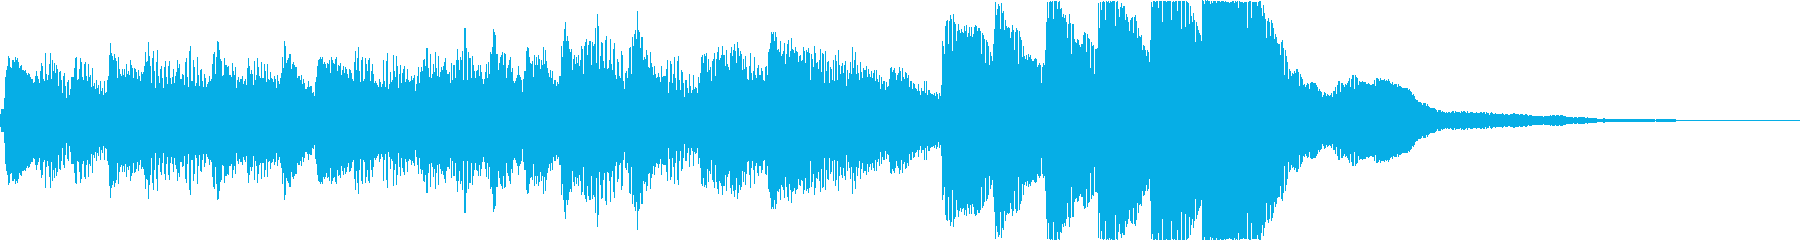 Cute jingle of xylophone and music box's reproduced waveform